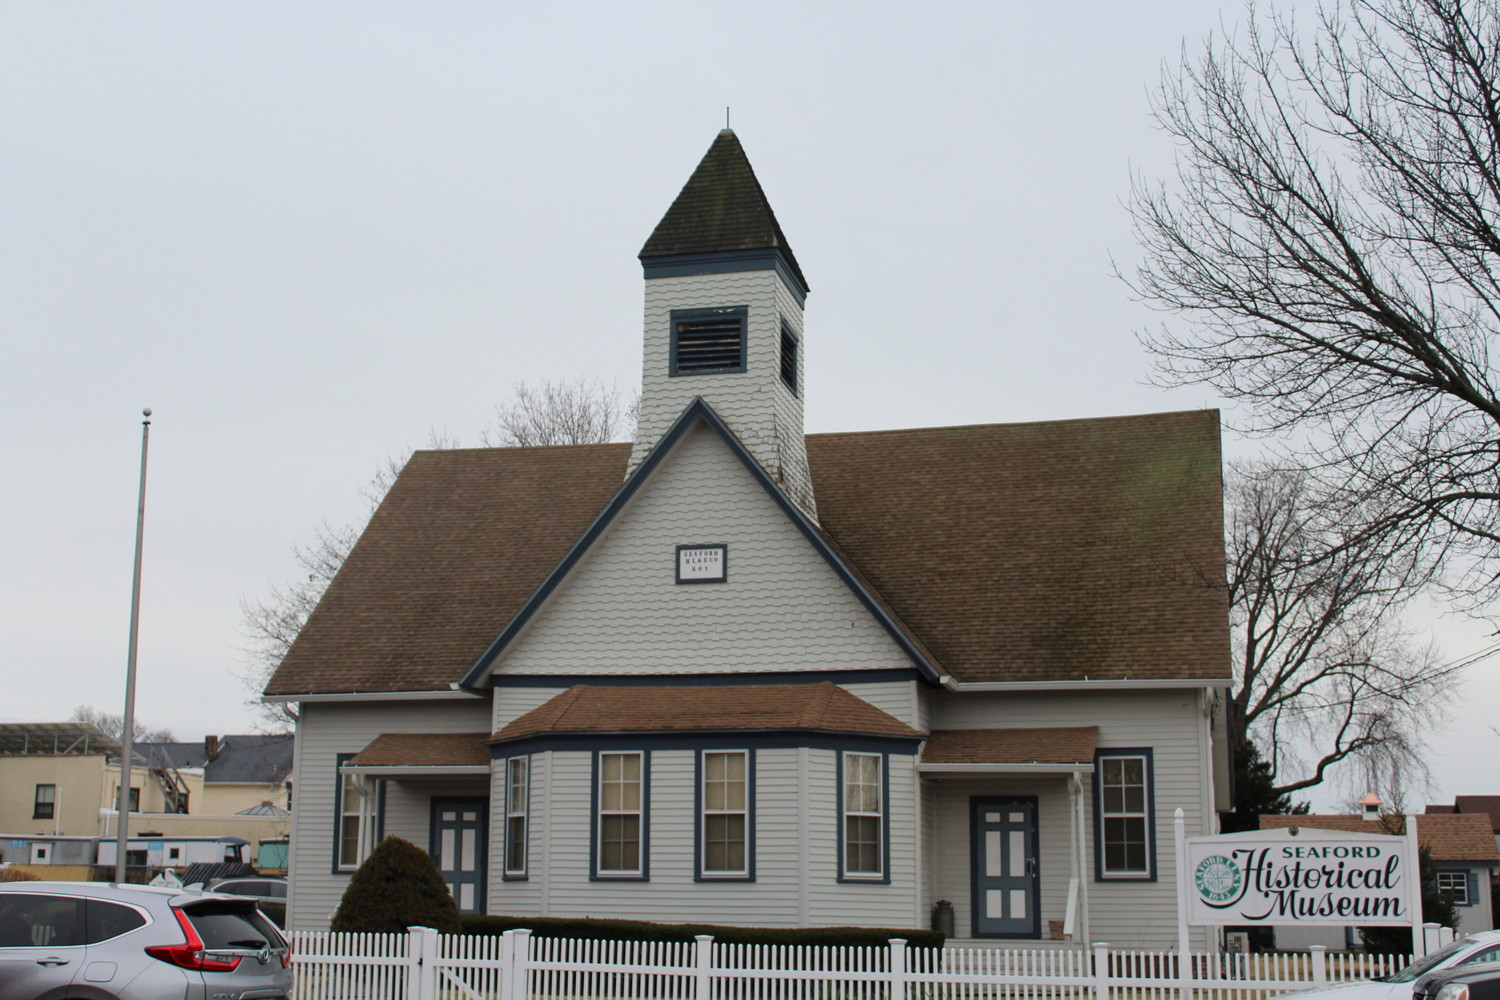 The Seaford Historical Society Museum, located on Waverly Avenue in Seaford, has undergone several renovations since 2006, but its bell tower has yet to be restored.